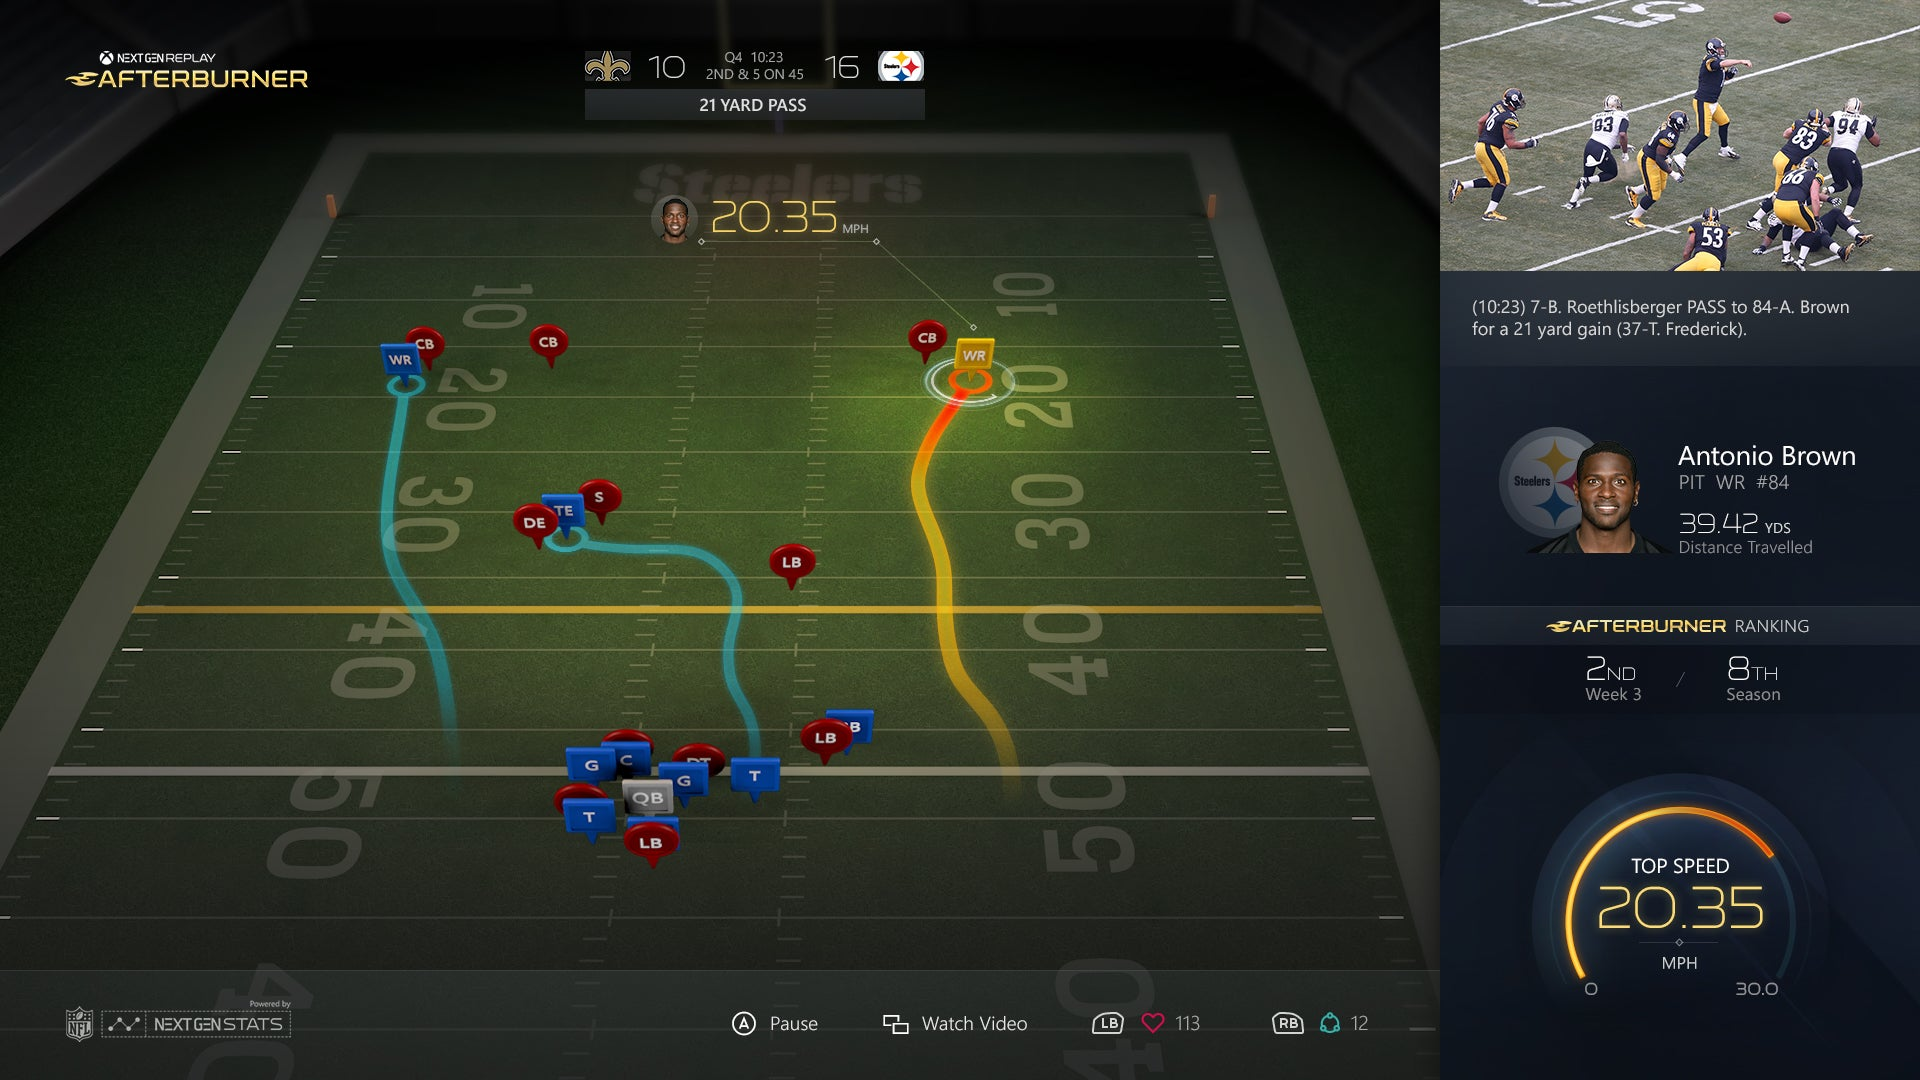 NFL Replays Are Going To Be Packed With Juicy Player Data This Year